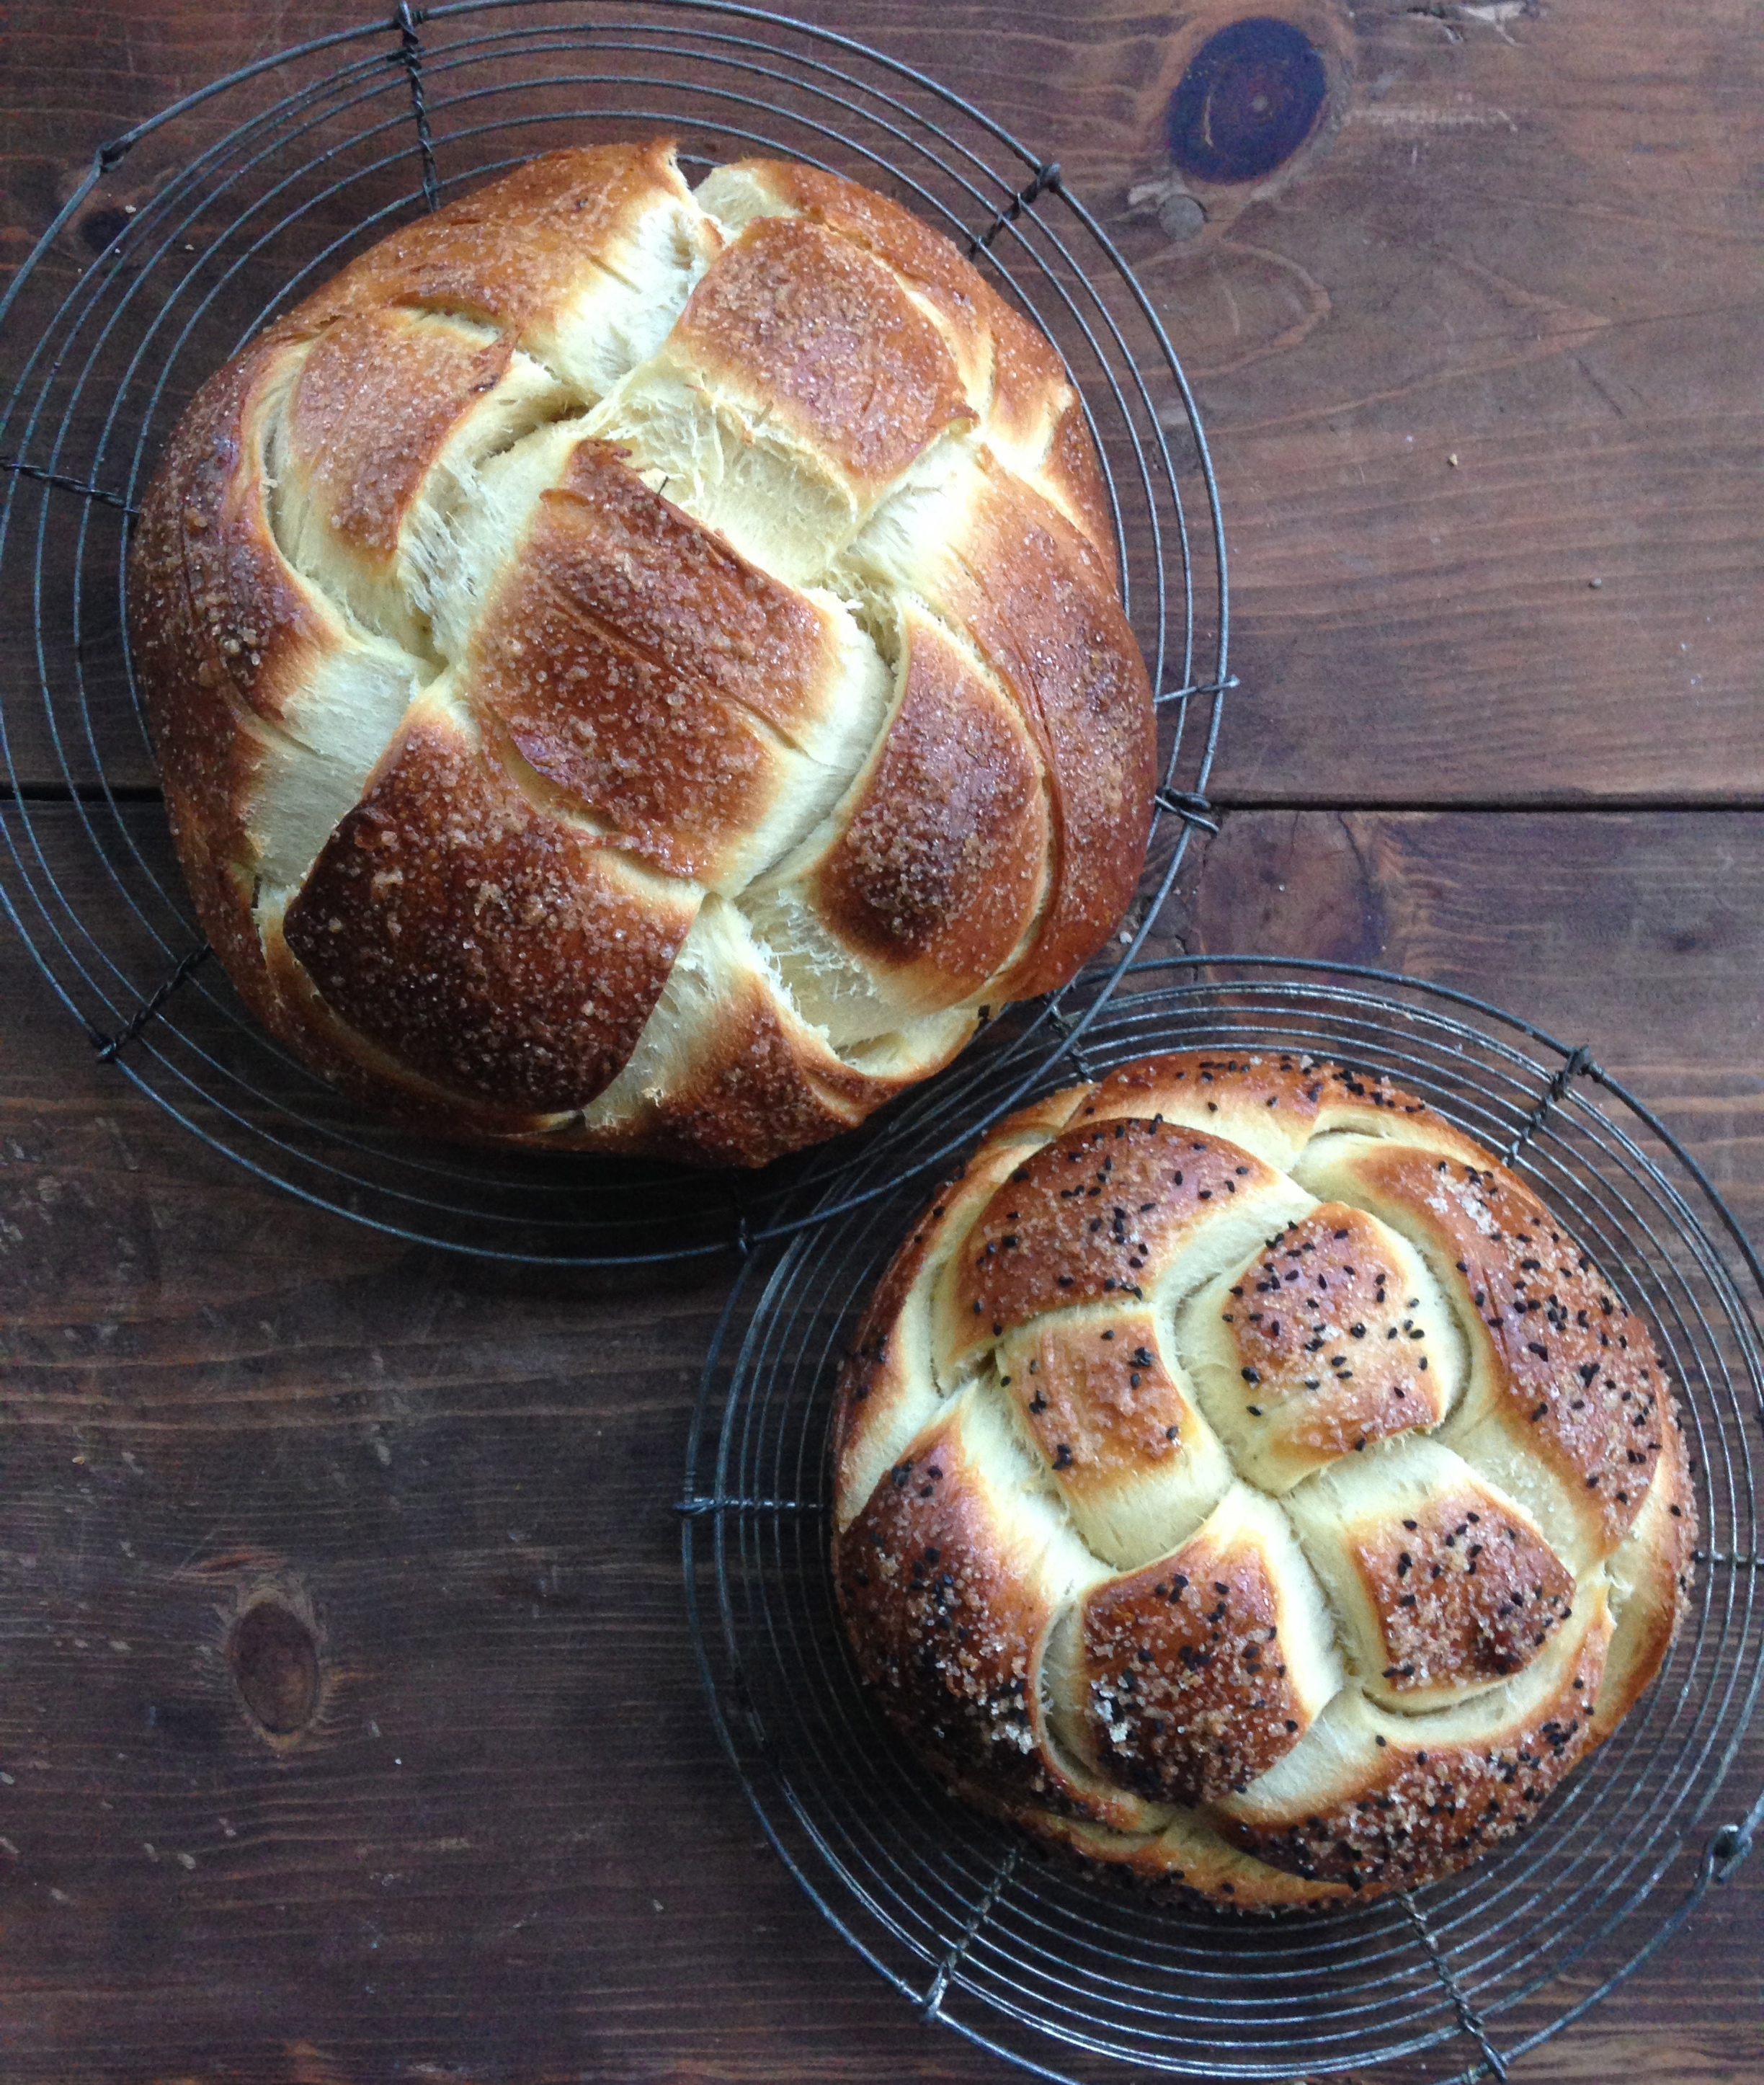 Four and six strand braided round Challah